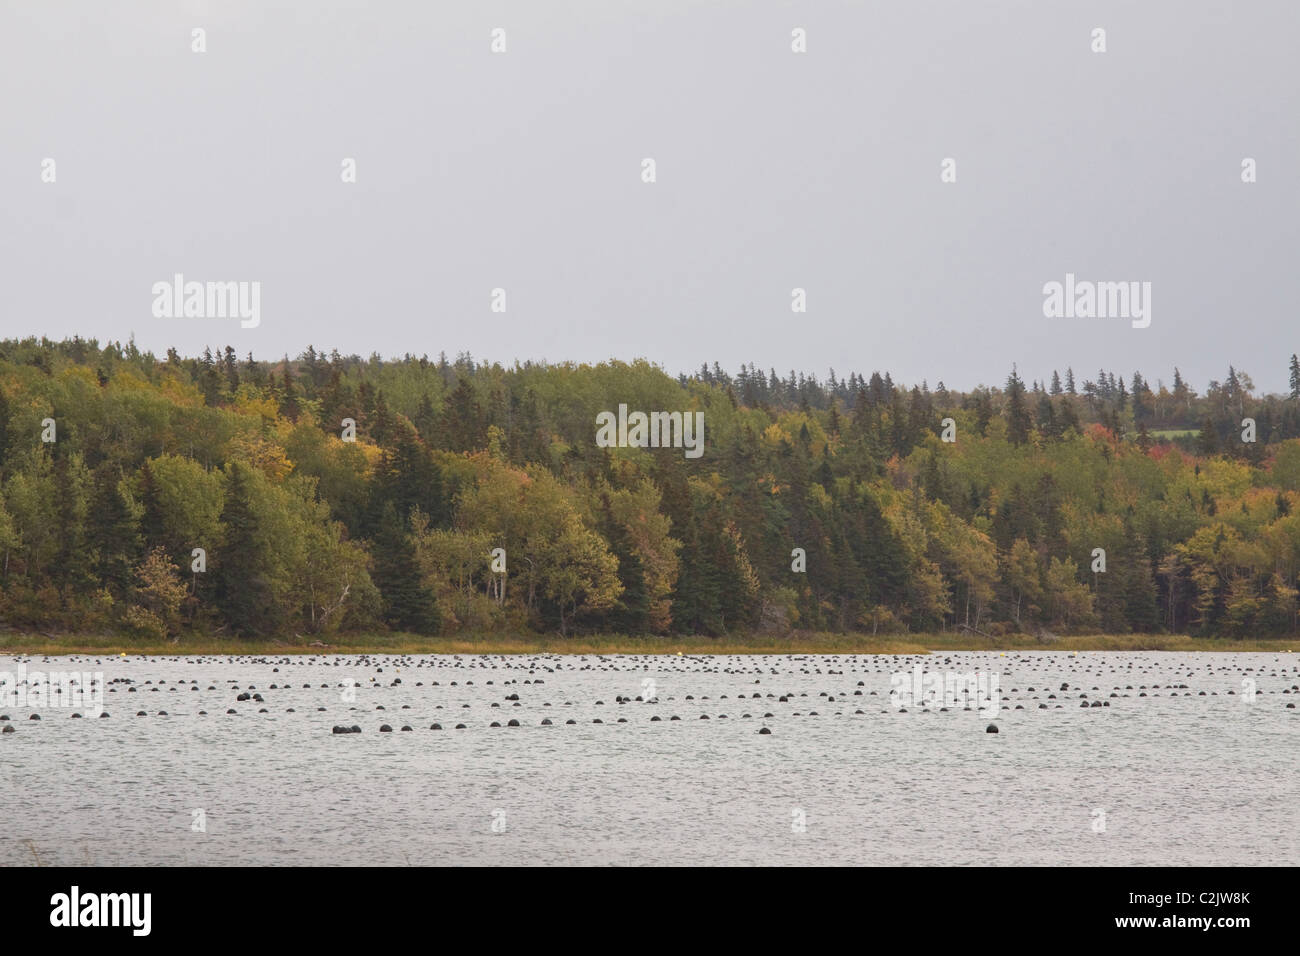 Rows of mandmade mussel beds, Queens County, Prince Edward Island, Canada - Stock Image